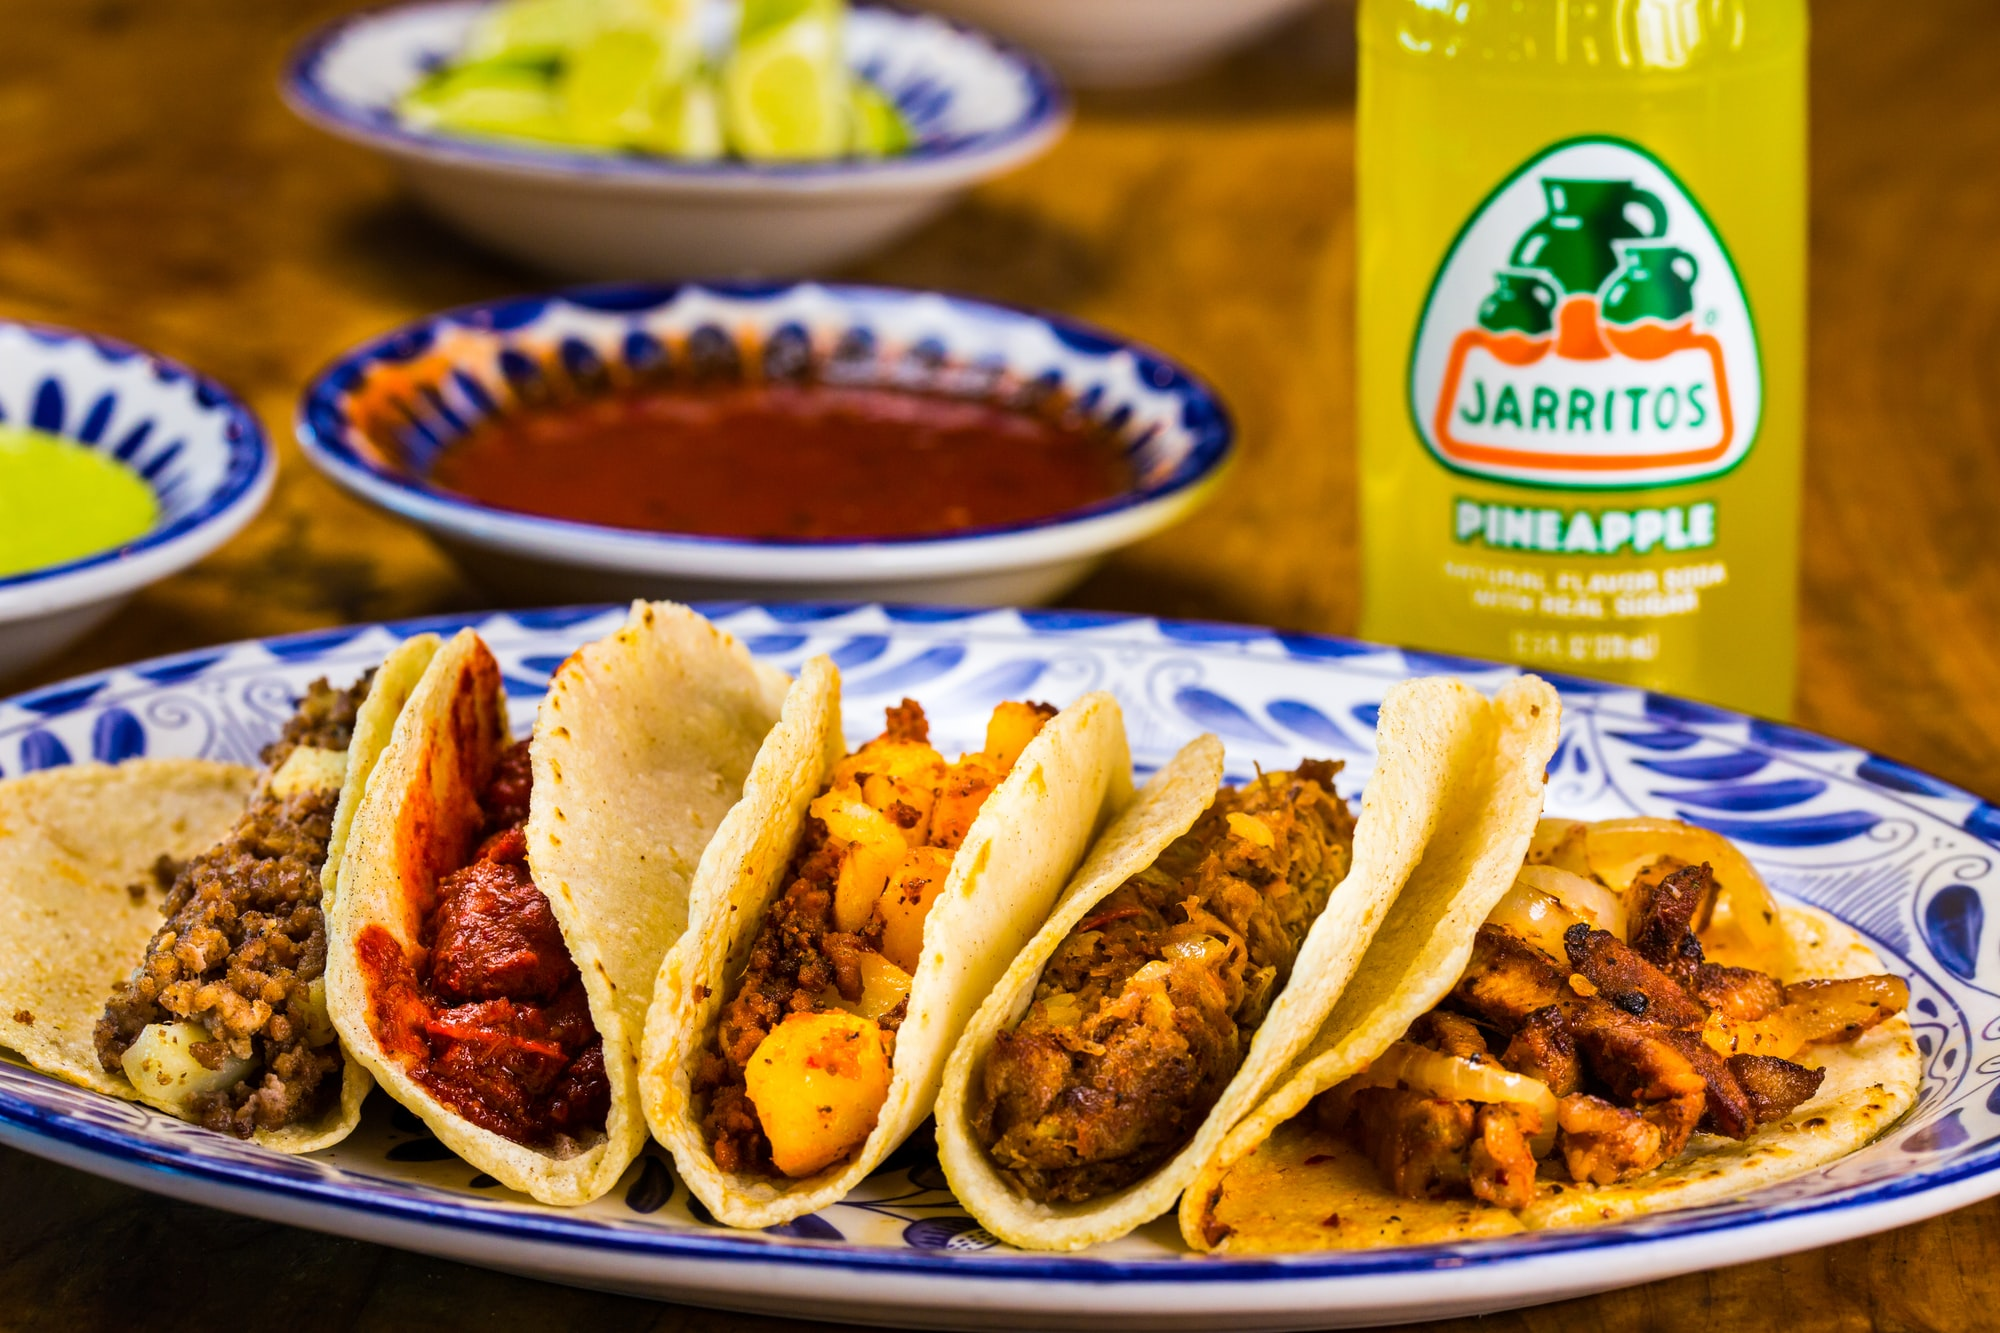 A mixed taco plate served with an all-natural-flavored Jarritos Pineapple Mexican Soda. The dish is served on a traditional Talavera plate.